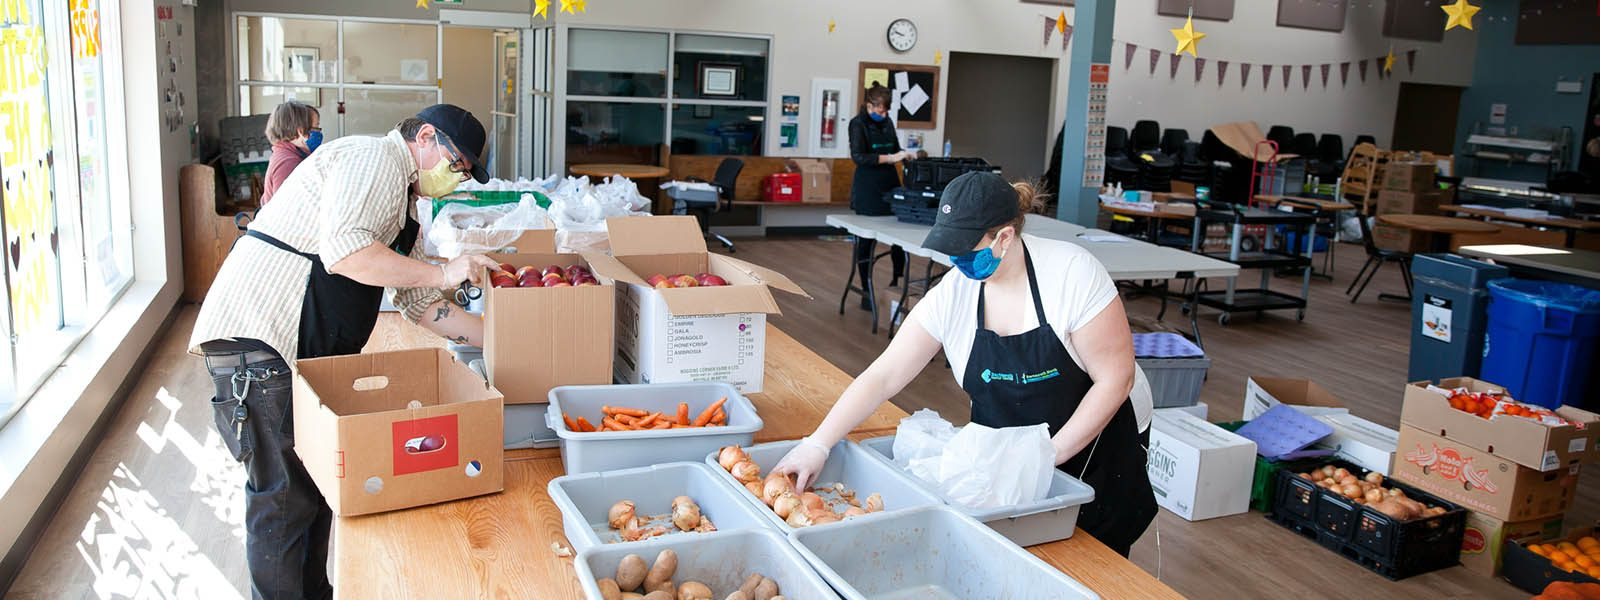 Image of a group of workers preparing food at the North Grove Community Centre in Dartmouth.